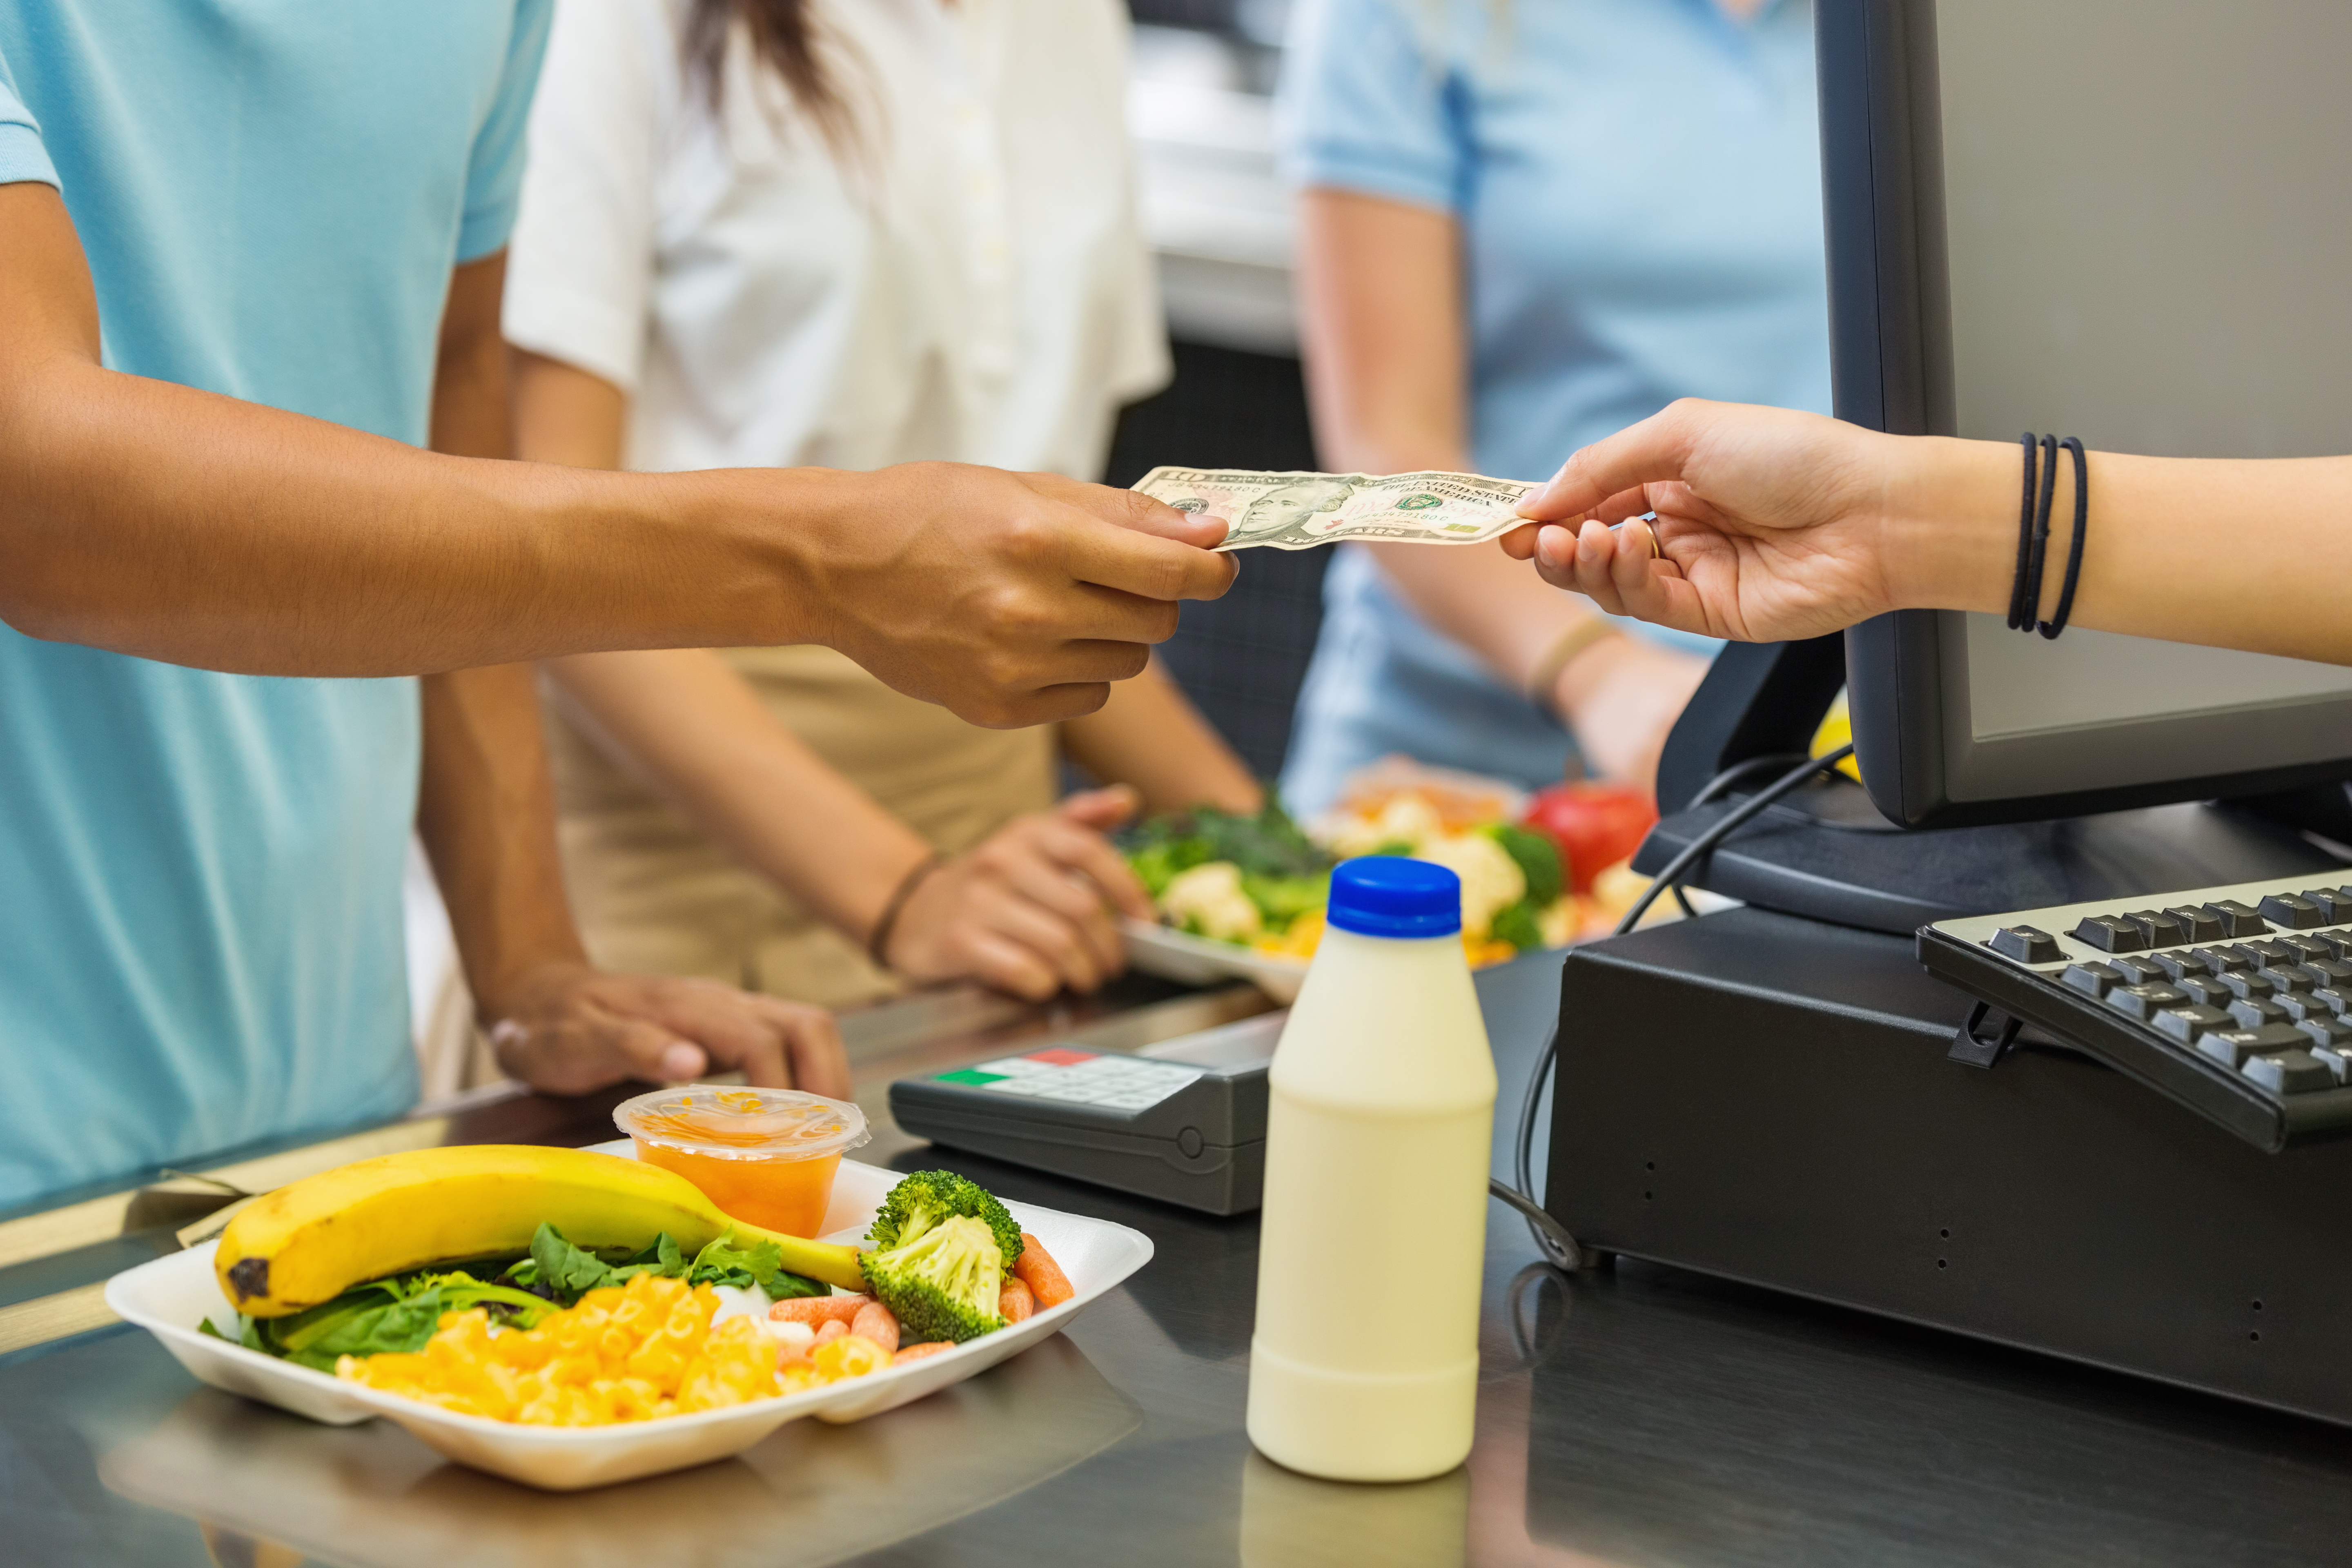 Student paying for school lunch with cash in cafeteria